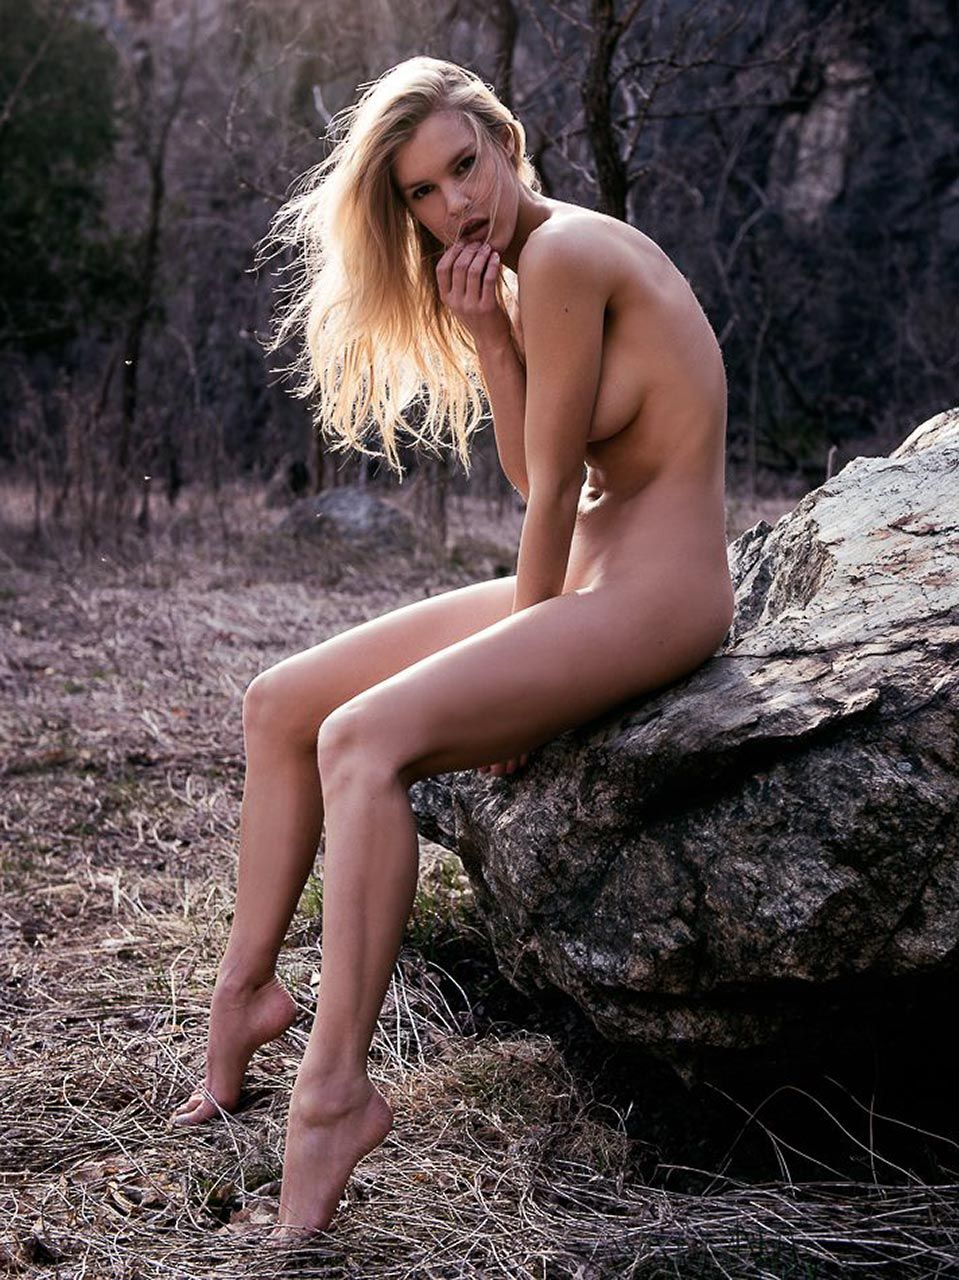 Joy Corrigan Nude Leaked The Fappening & Sexy 0094